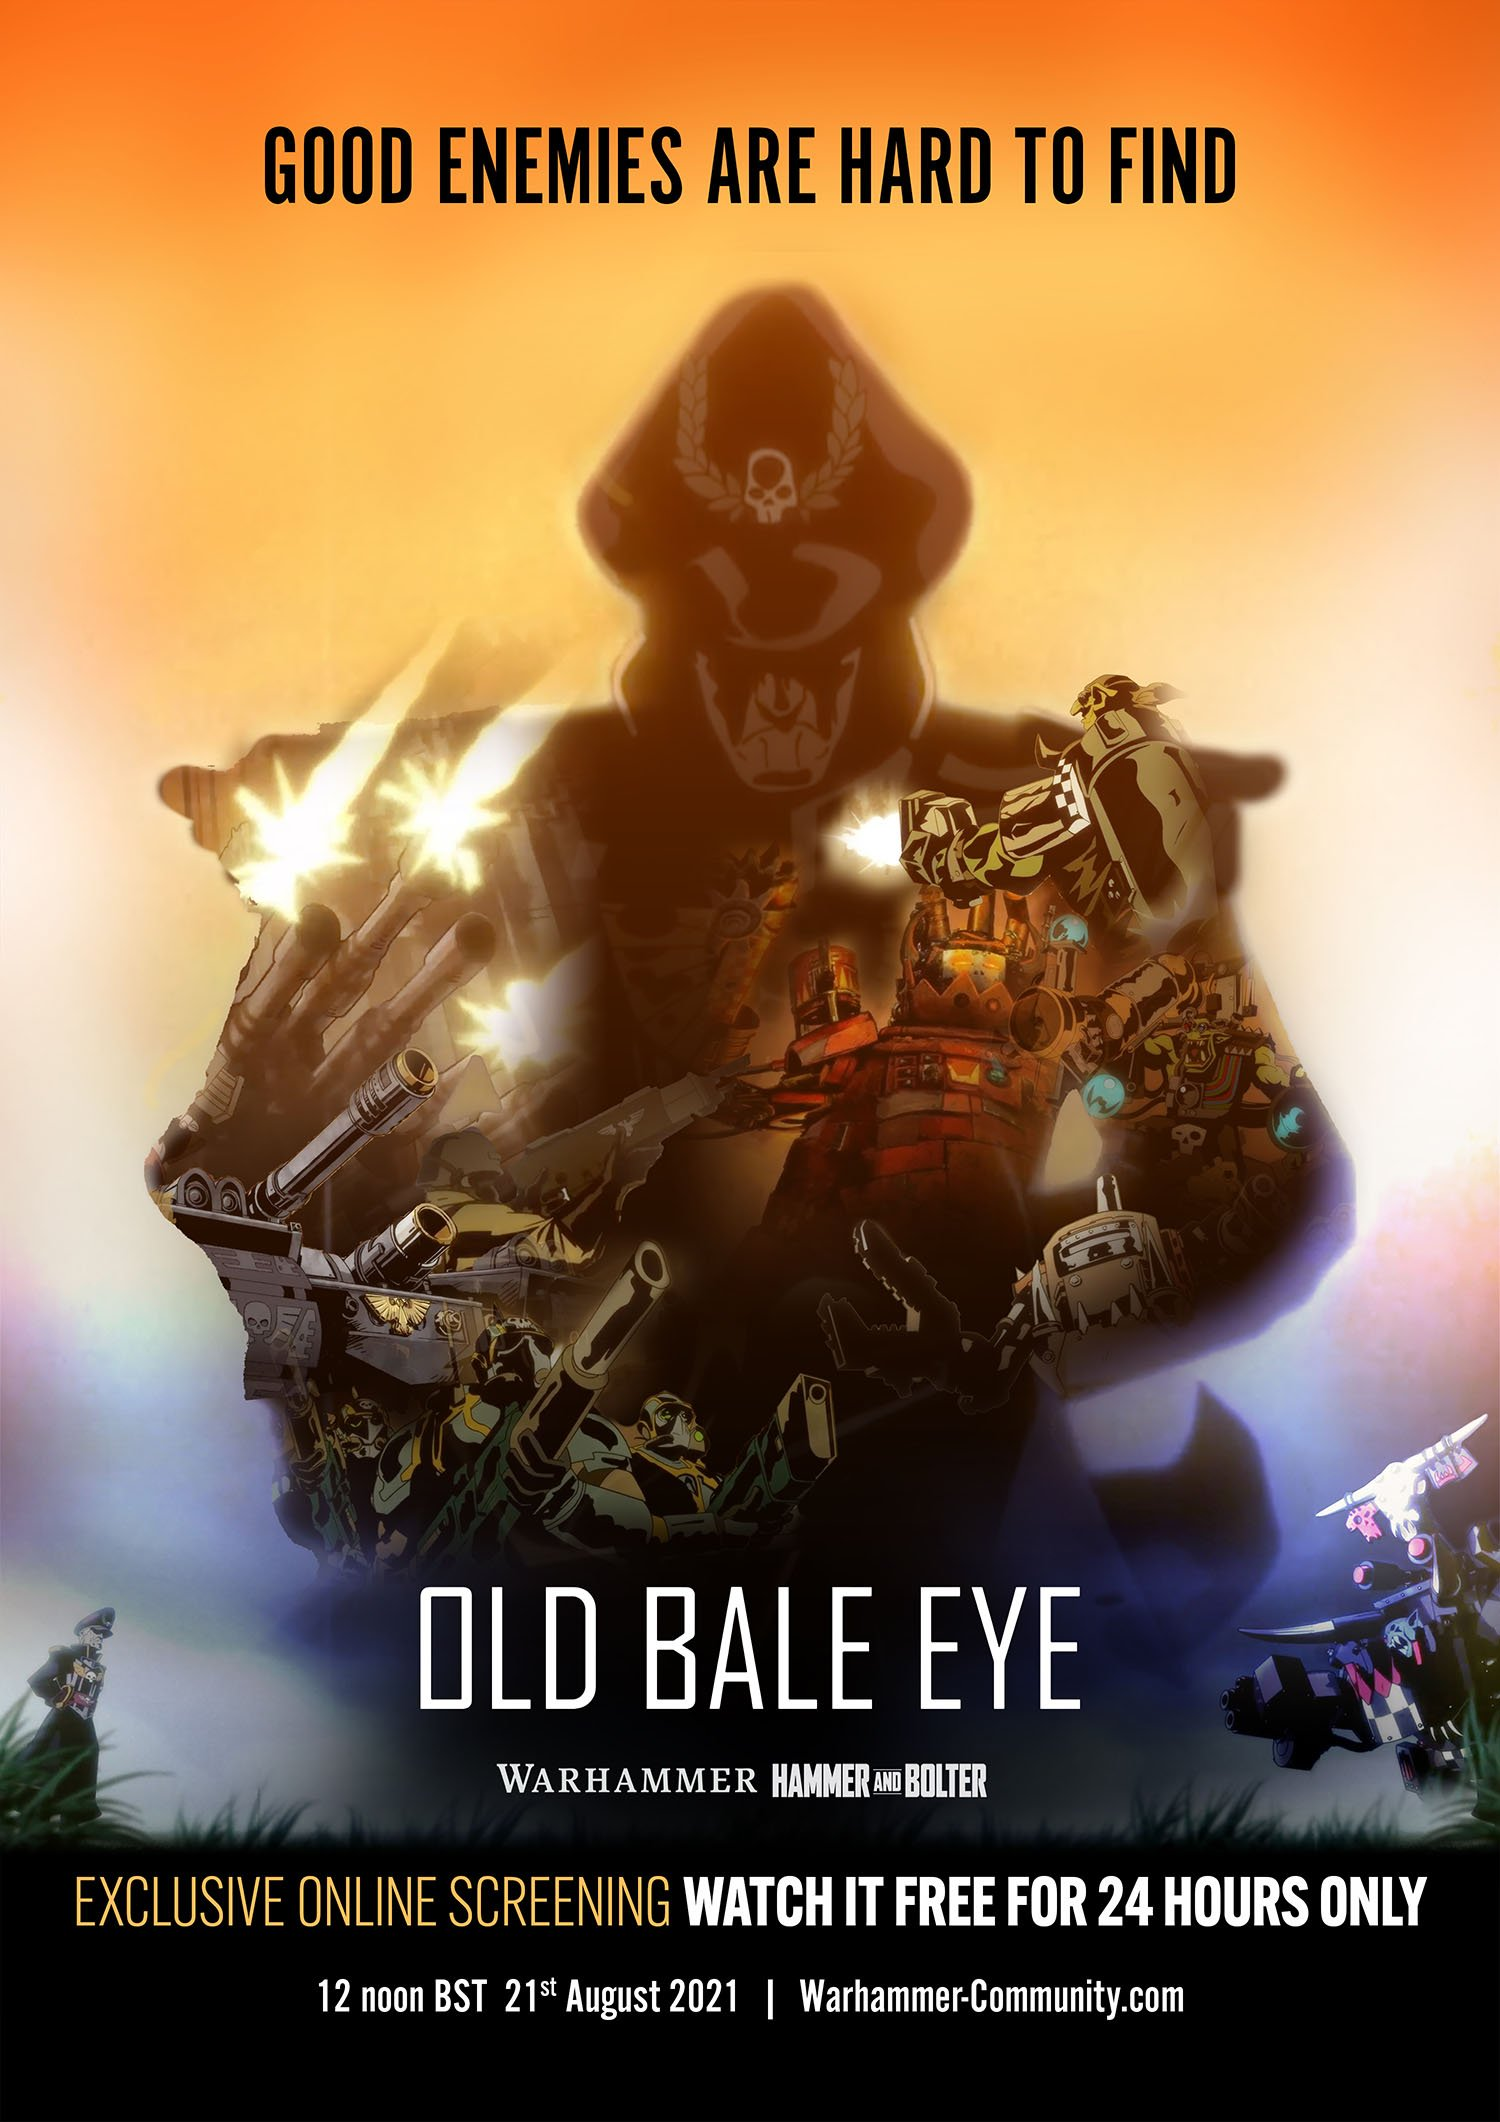 Old Bale Eye - Warhammer Hammer And Bolter